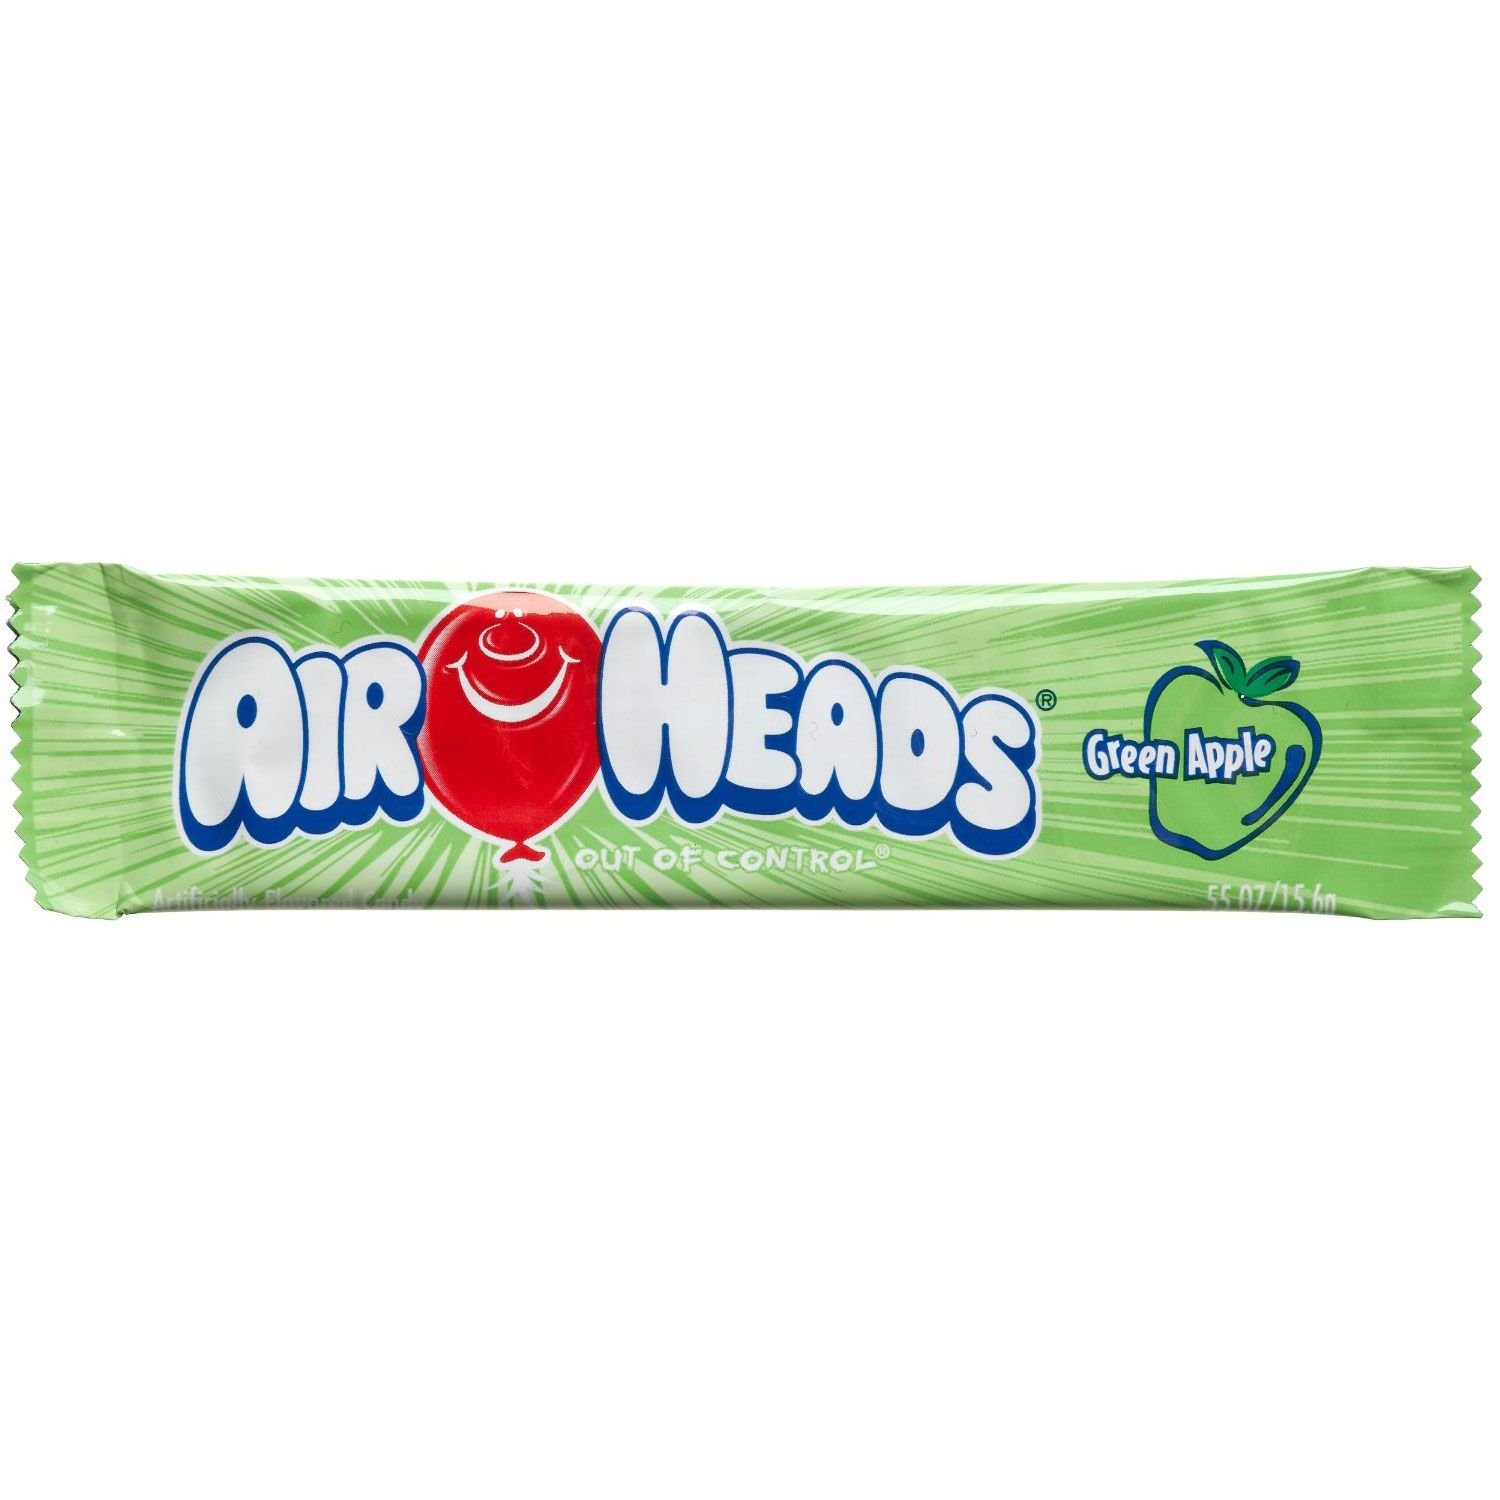 Airheads Green Apple Flavored Candy - 0.55 oz. Bar - 36 ct. by Airheads